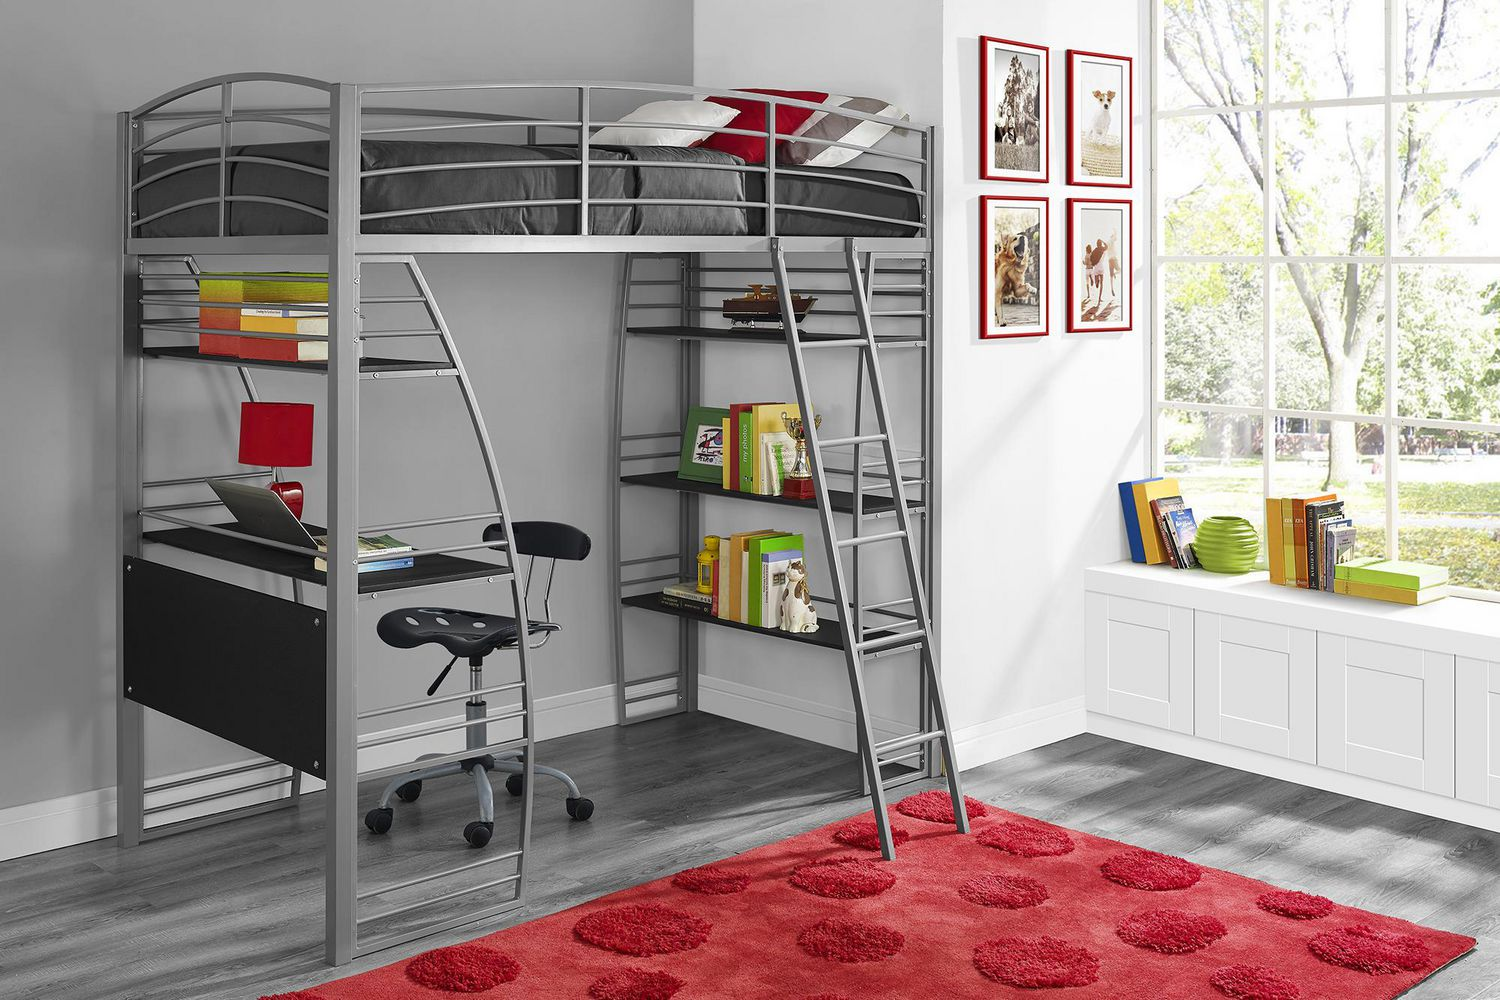 Advantages And Drawbacks Of Strong Wooden Loft Bed With Stairs Studio Loft Bed - image 1 of 8 zoomed image